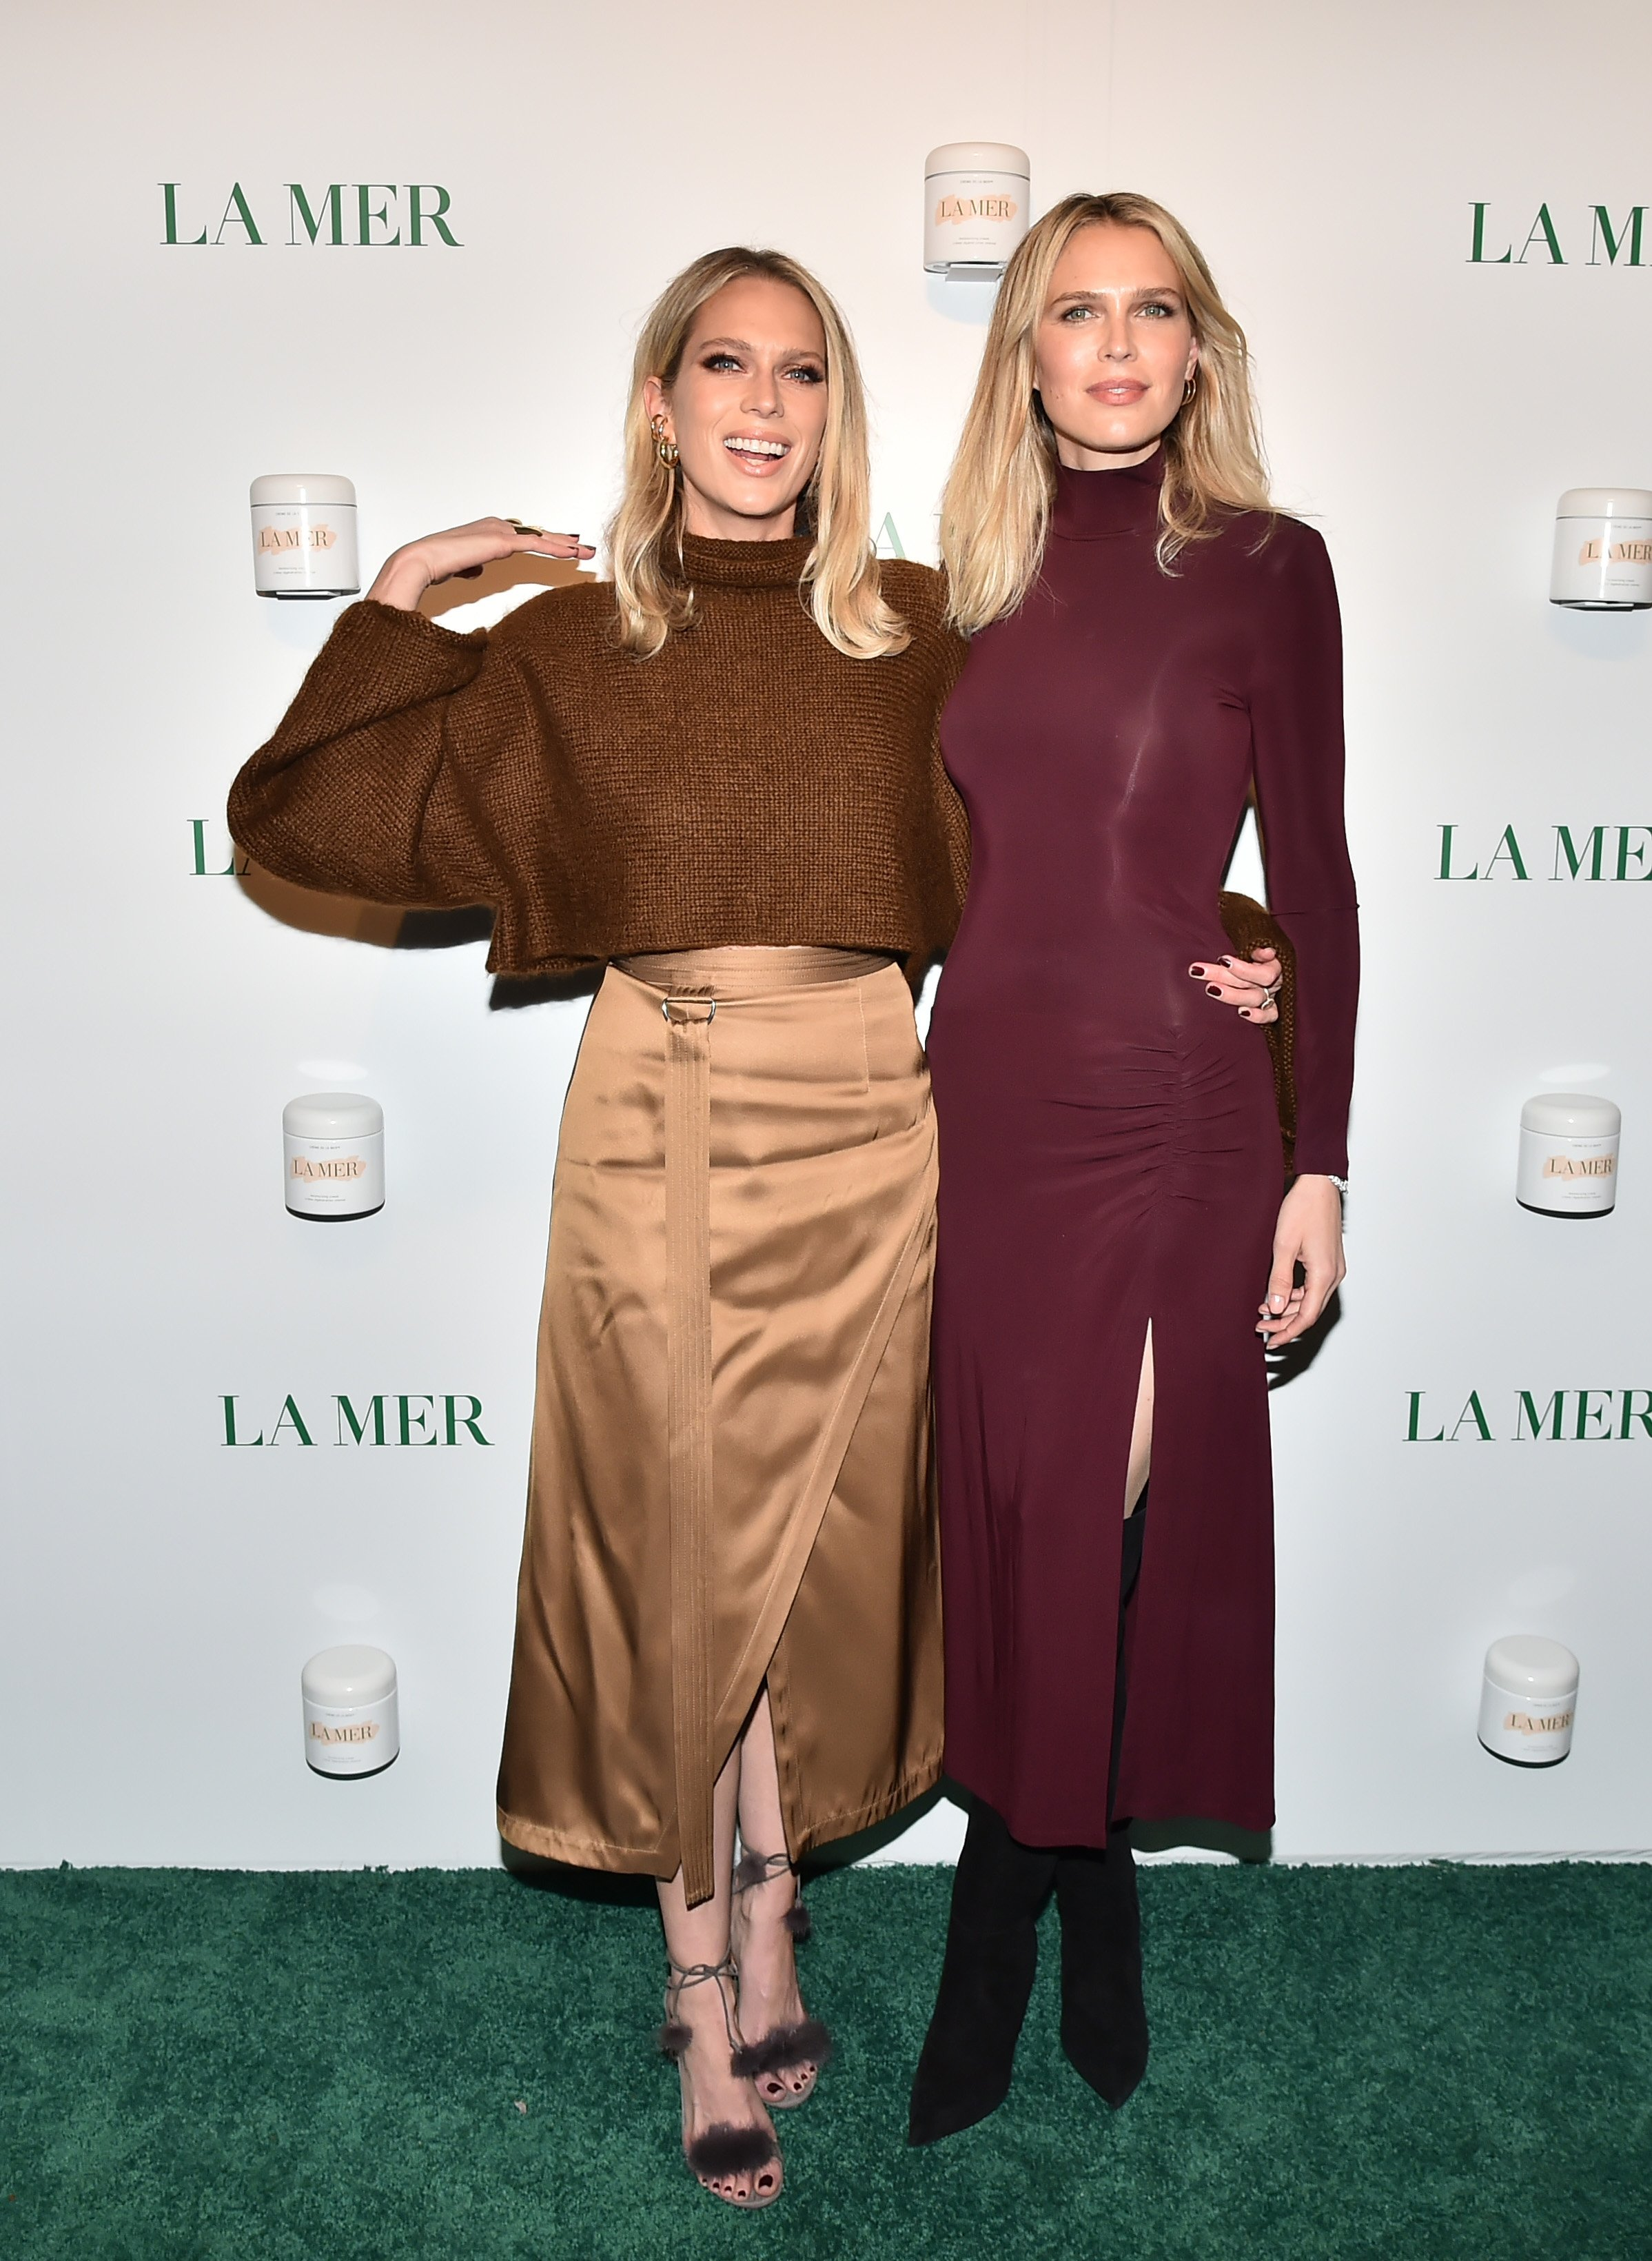 Sara Foster and Erin Foster attend La Mer By Sorrenti Campaign at Studio 525 on October 03, 2019, in New York City. | Source: Getty Images.